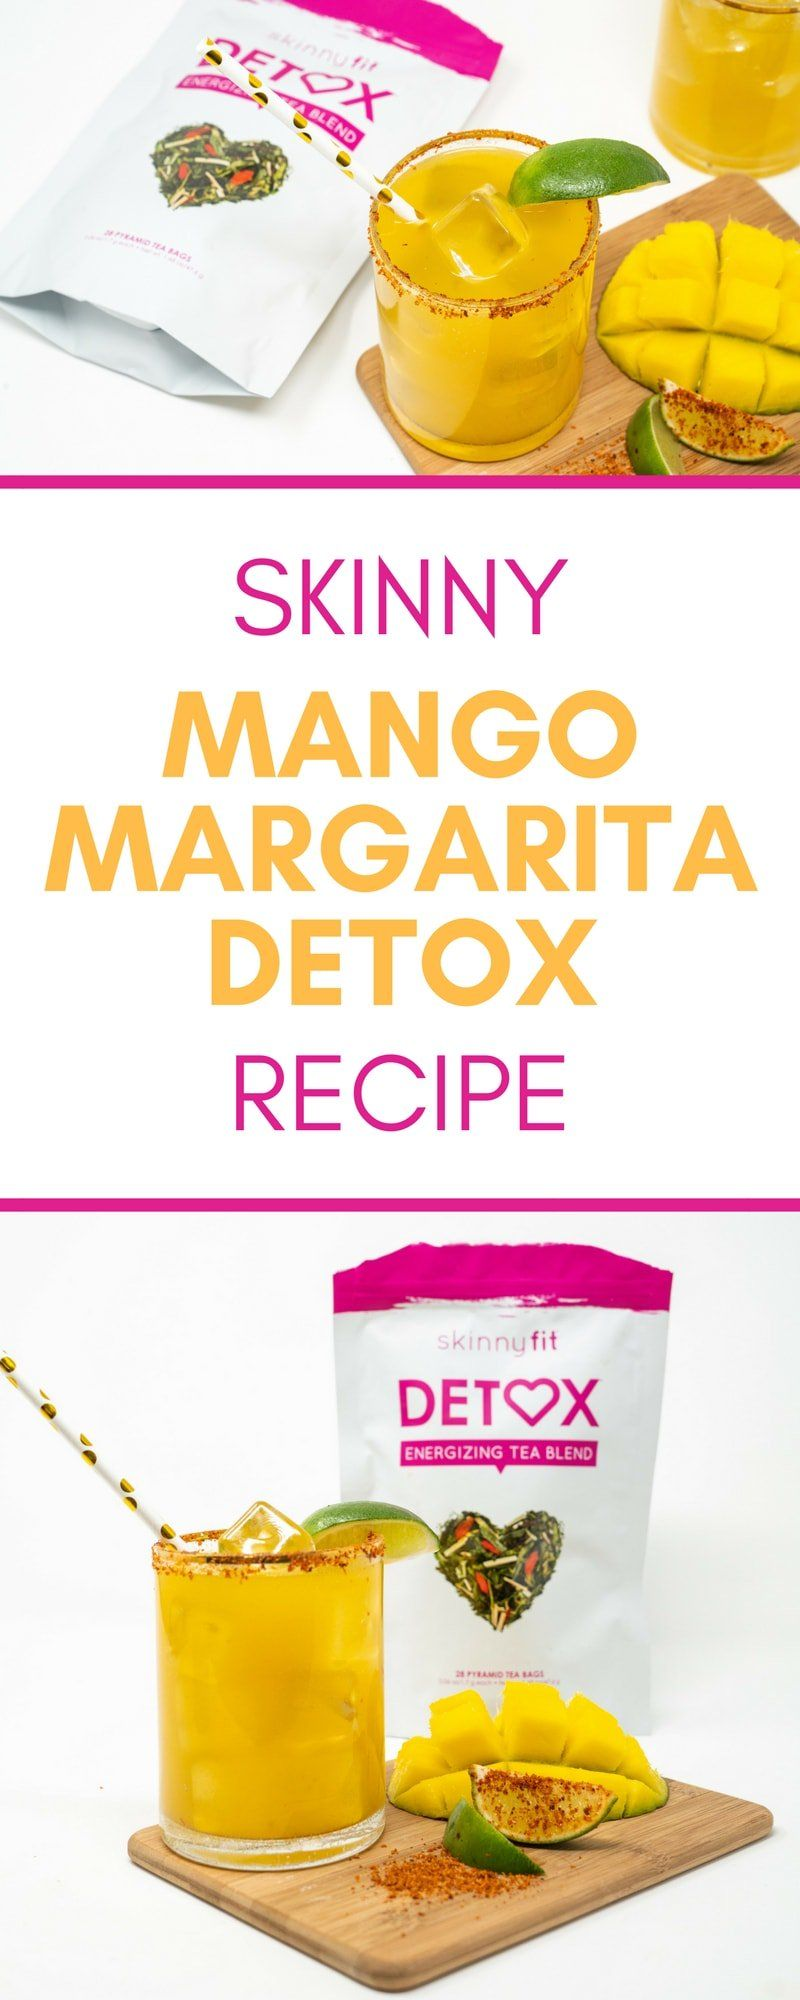 How to make the most delicious skinny margarita with these